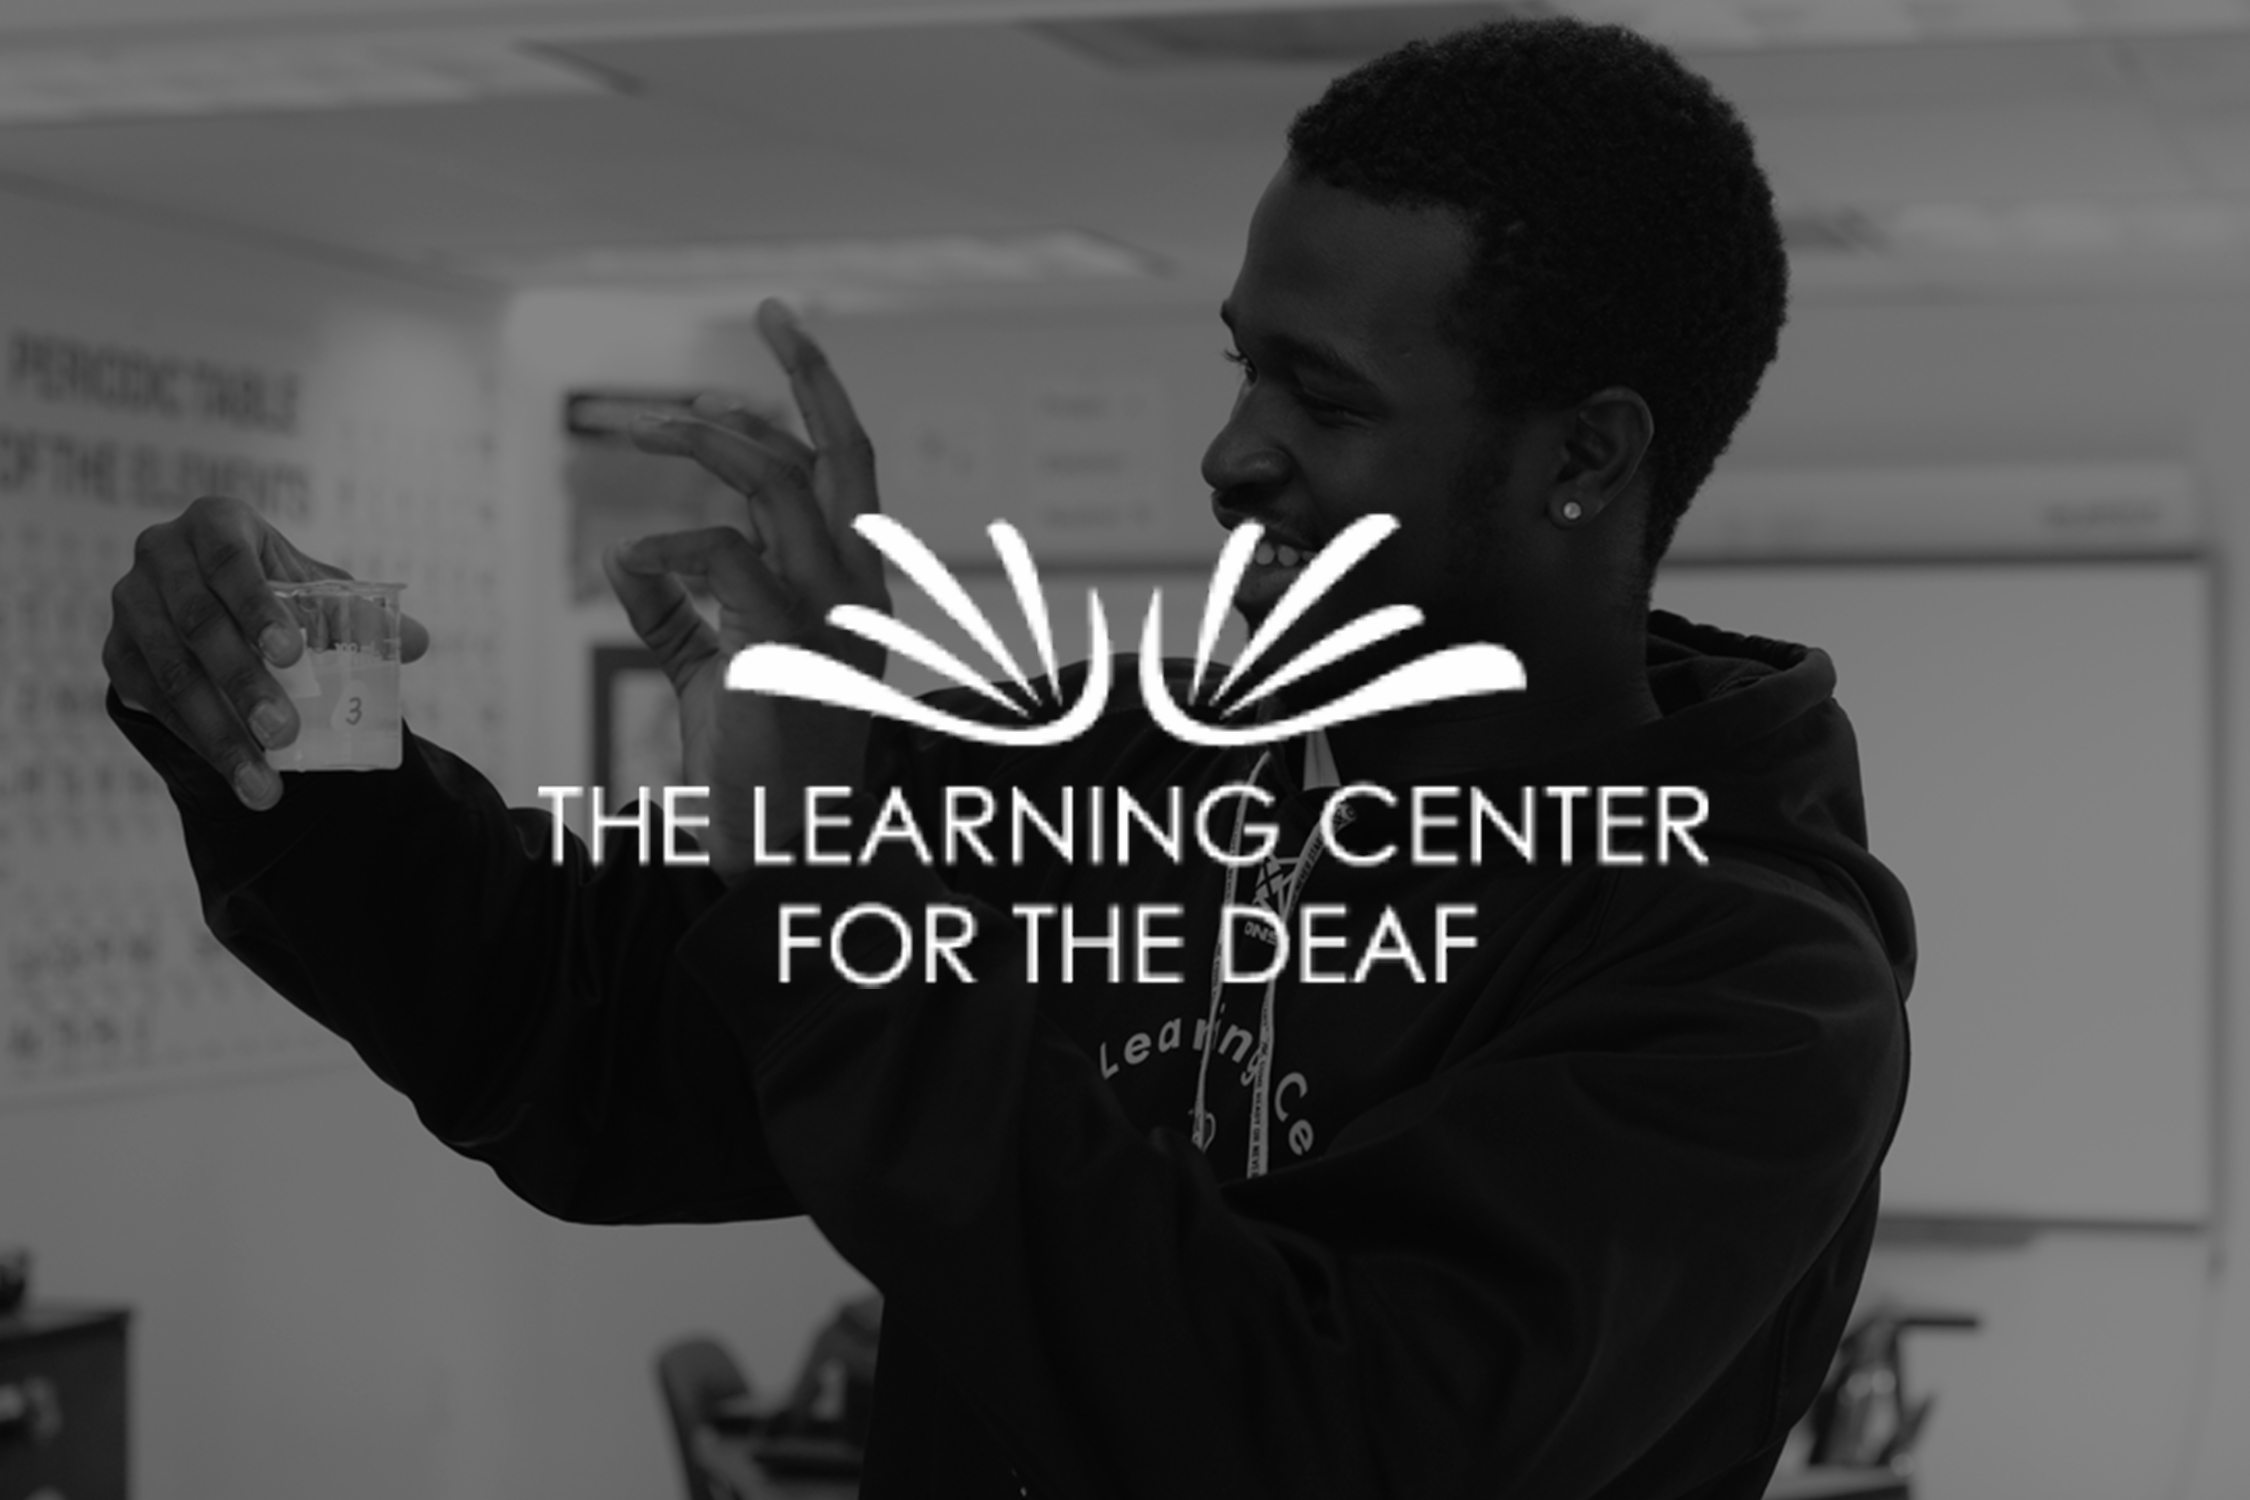 TAoC_InTheNews_TheLearningCtrDeaf_icon_2.jpg